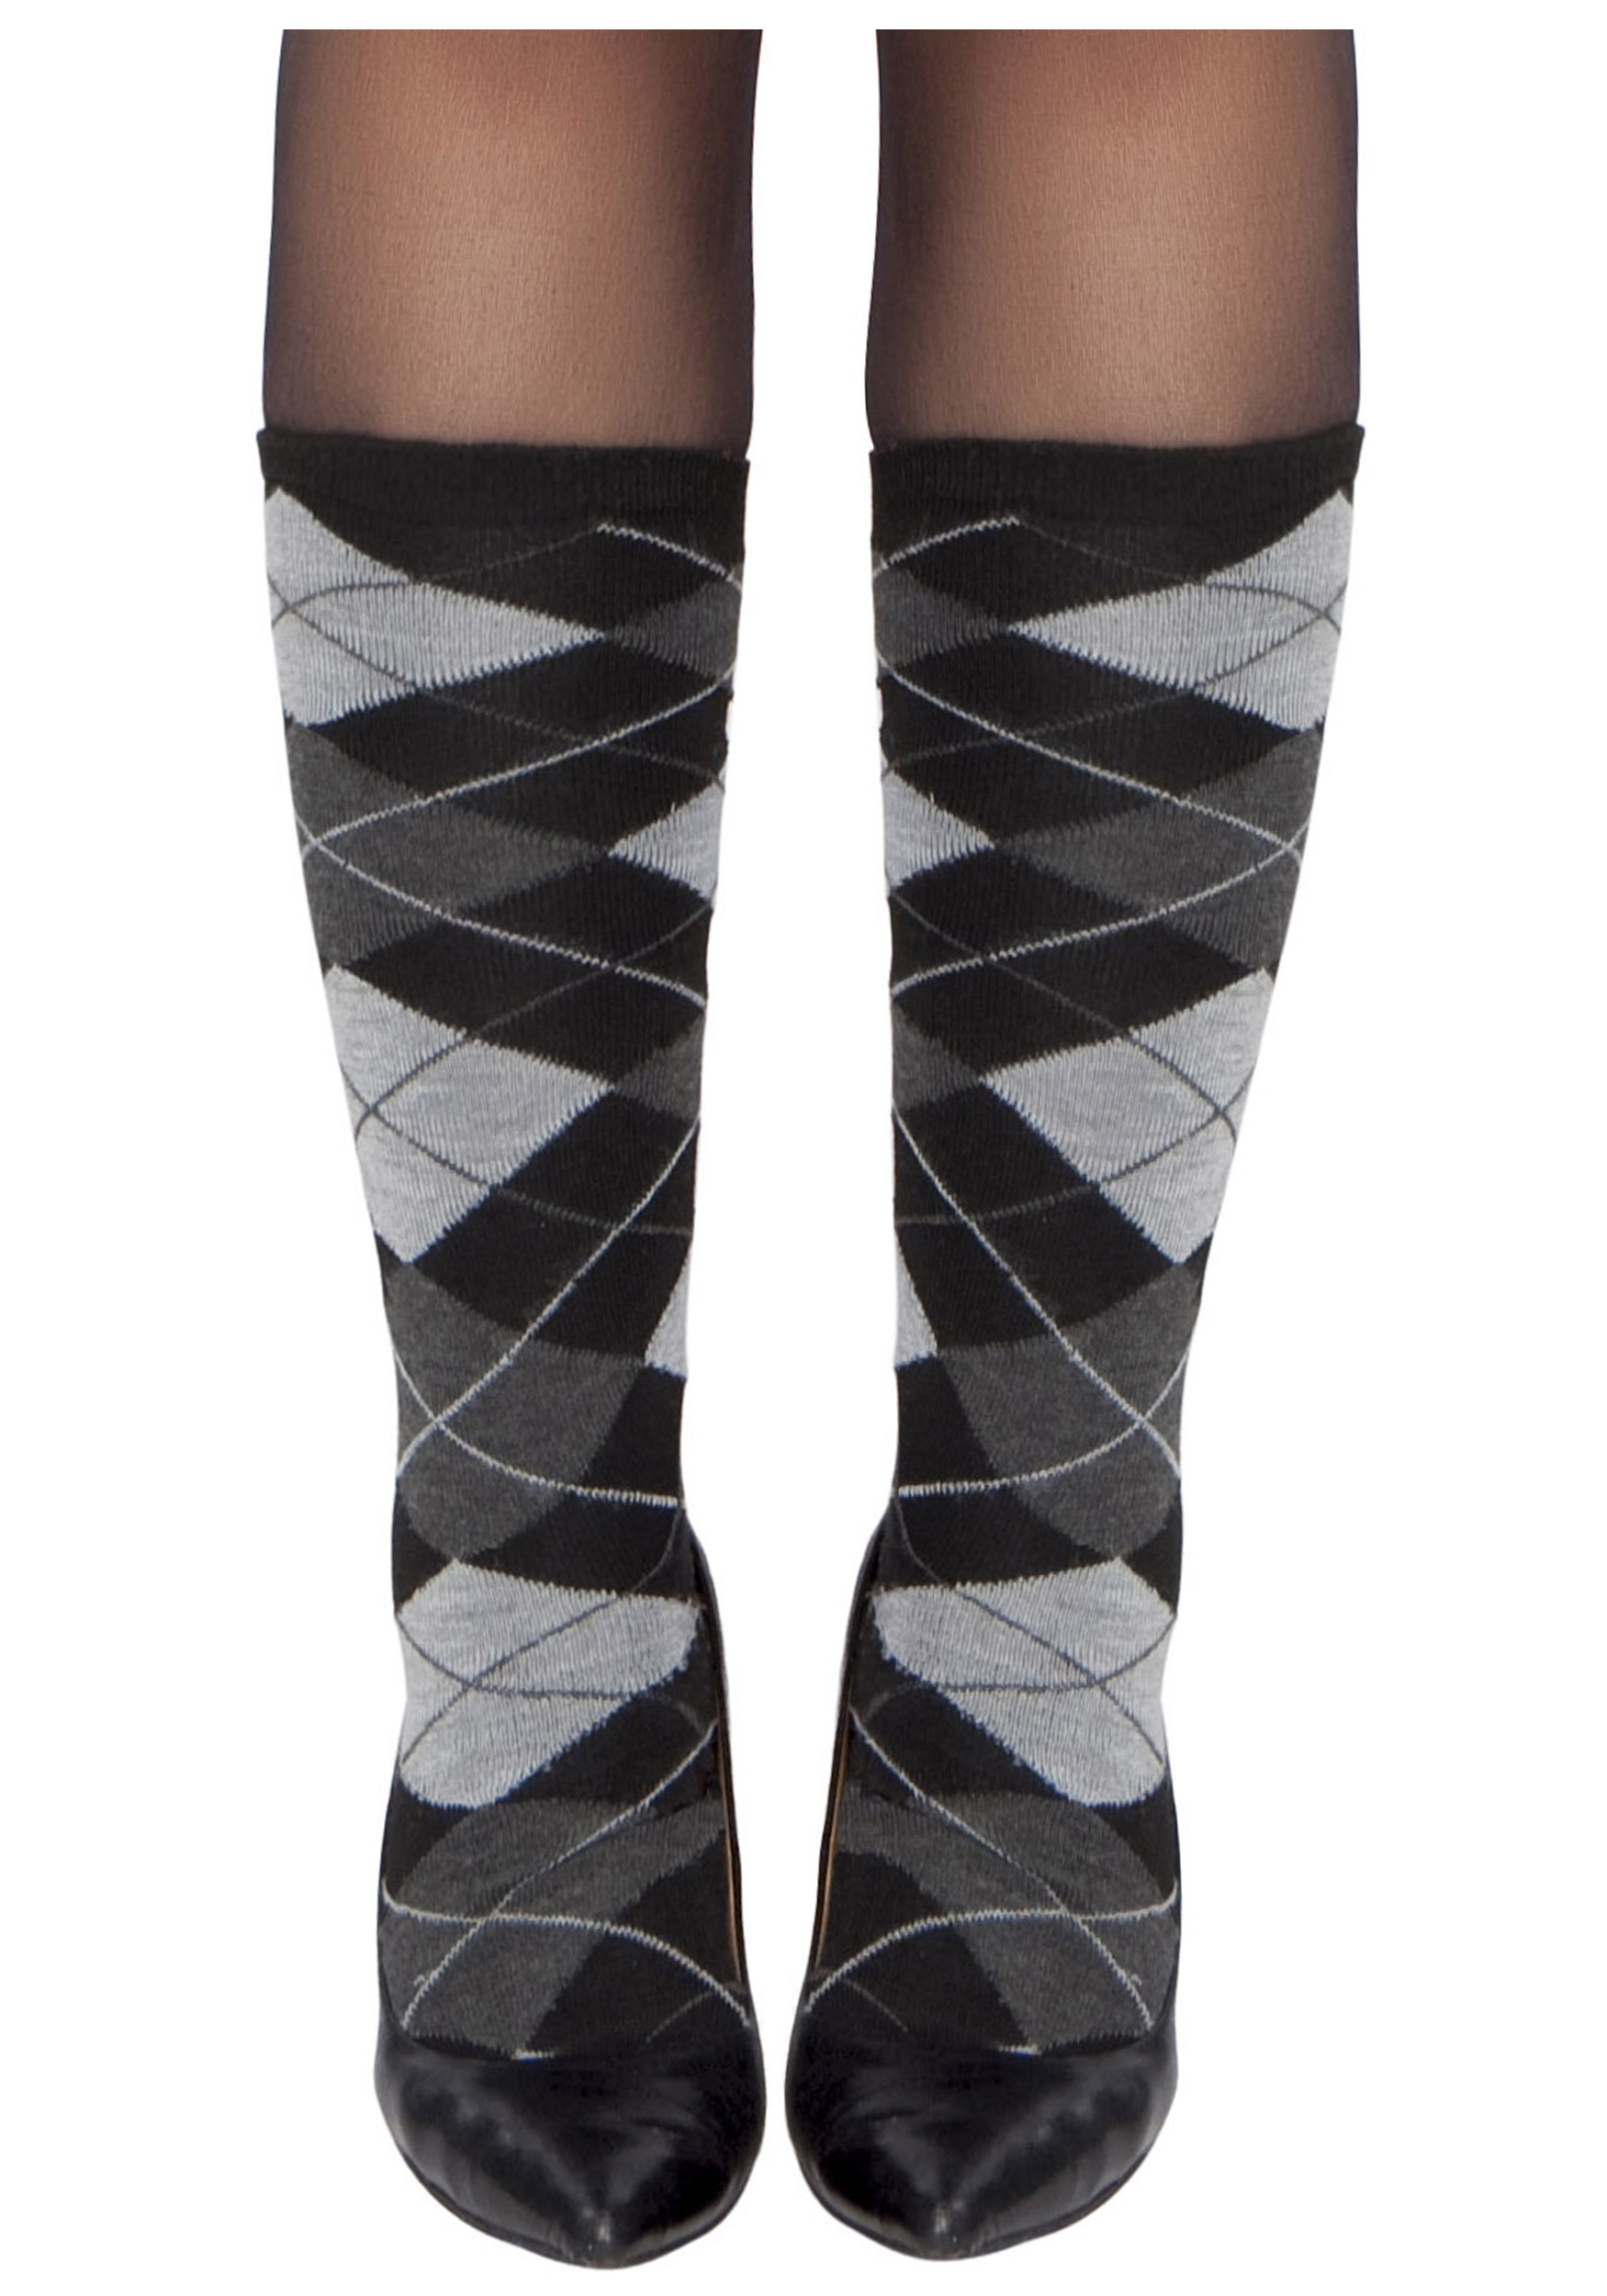 Pattern Stockings New Design Inspiration